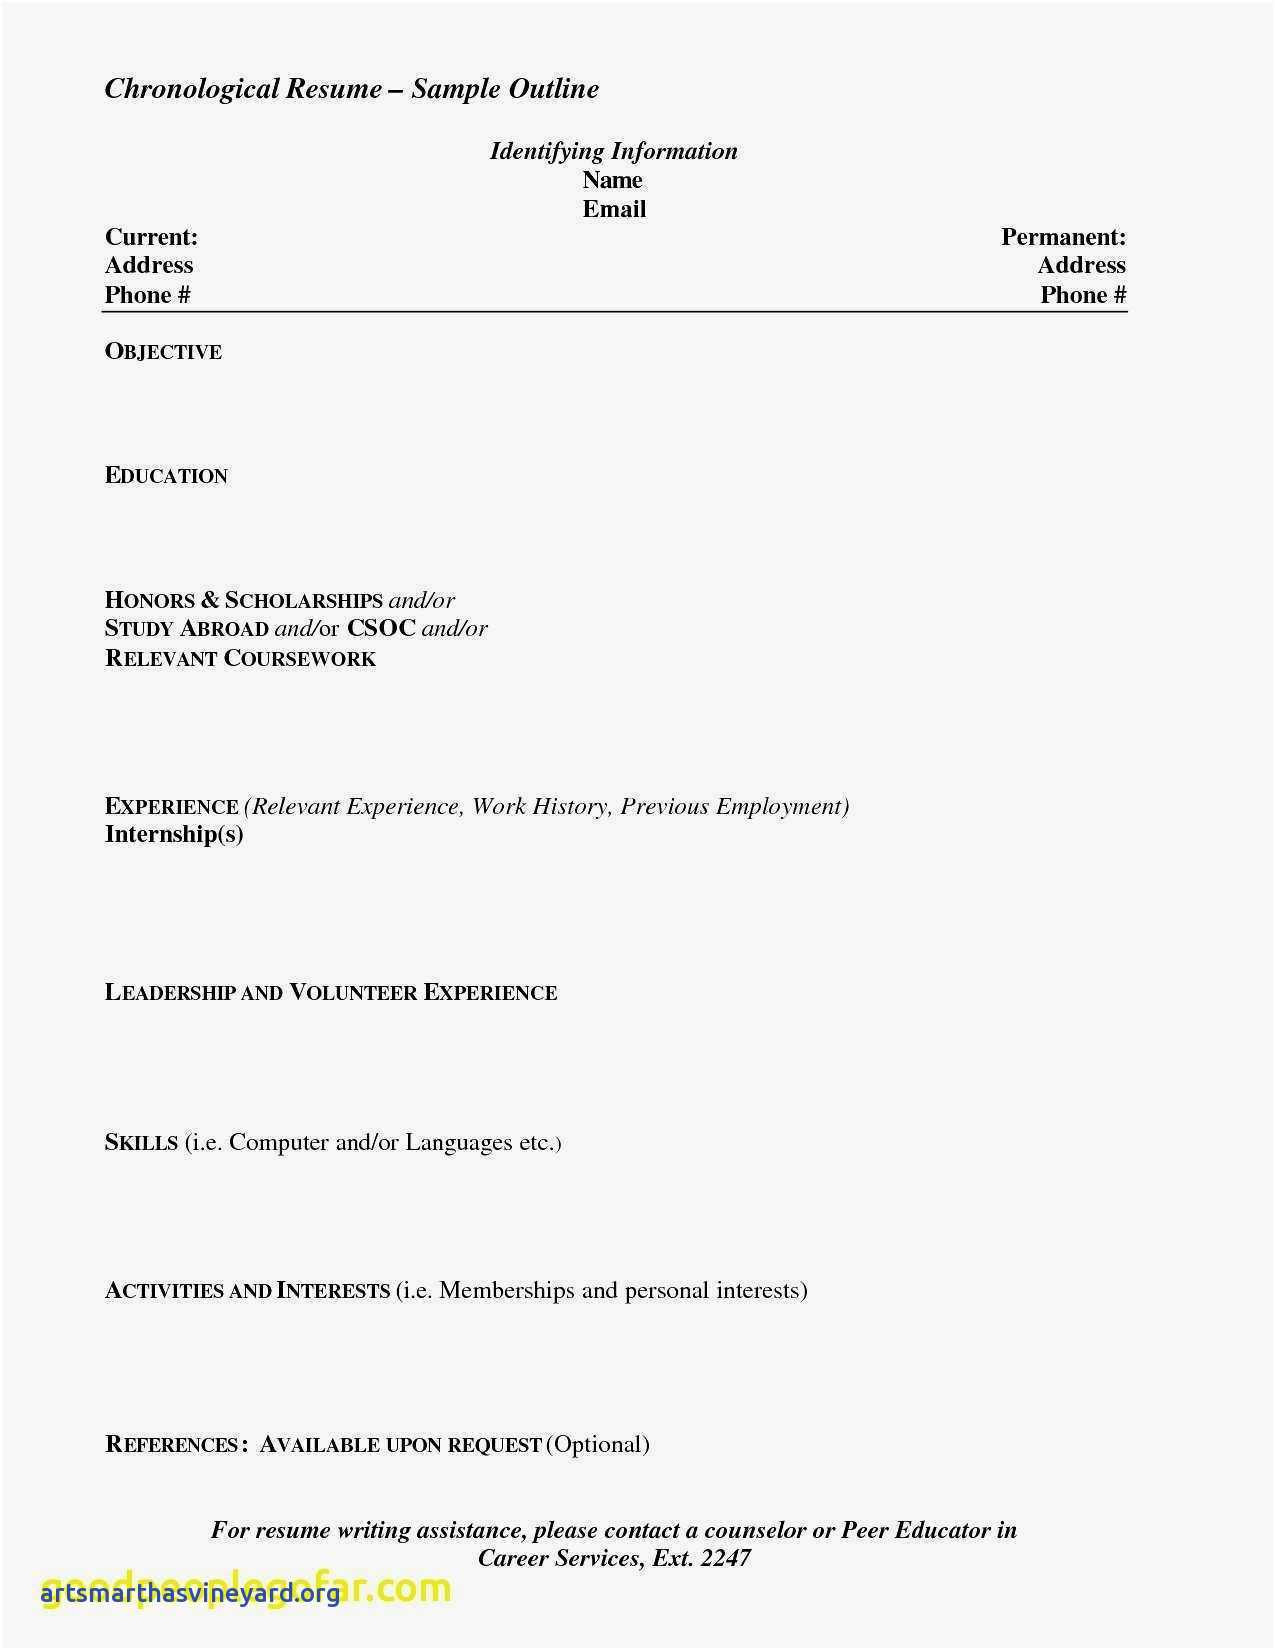 Resume for Medical School - Valid What Should Be A Resume for A Teenager Vcuregistry